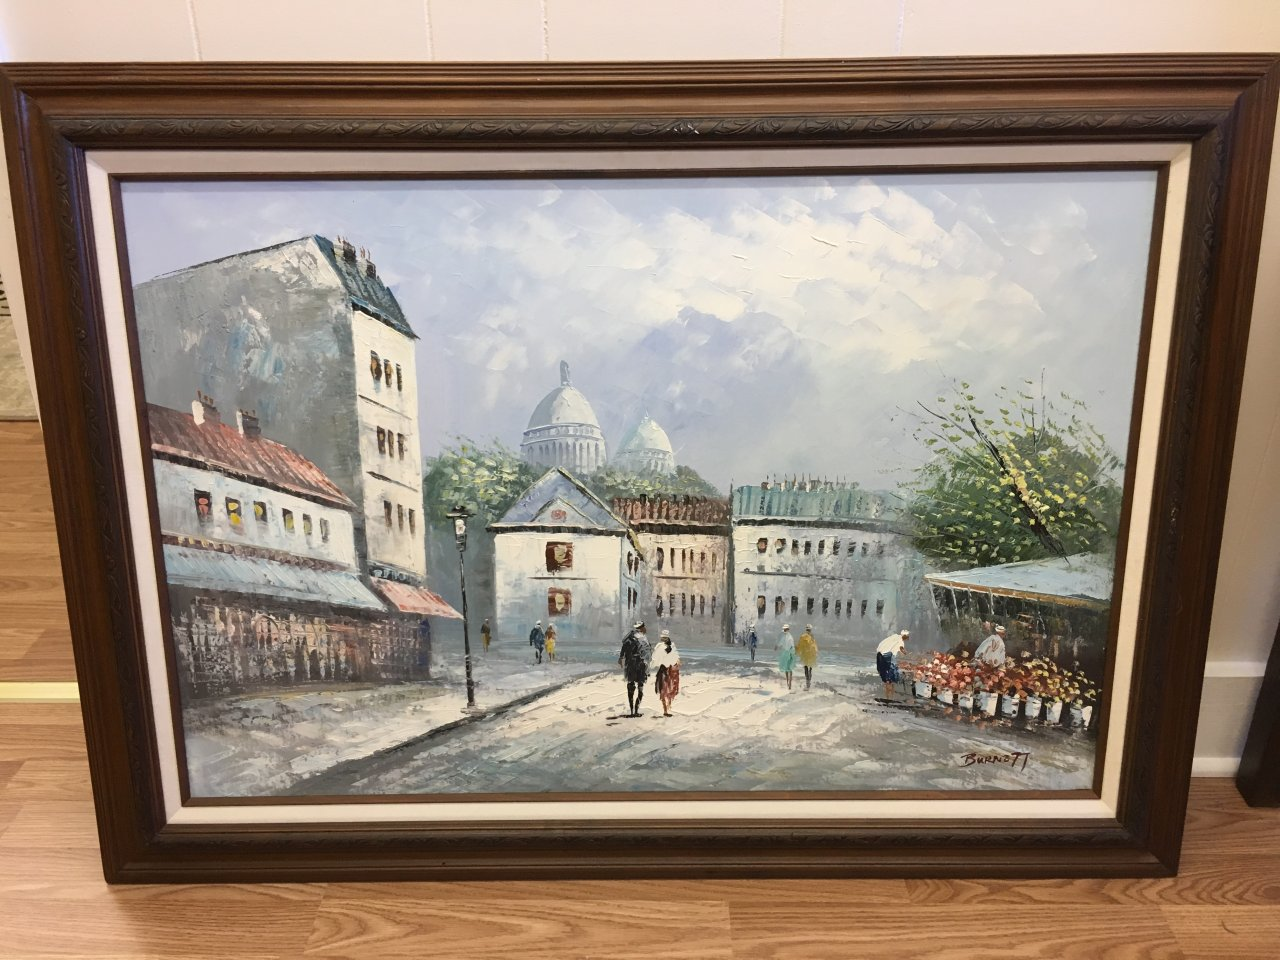 can you tell if this is an original burnett oil painting and how